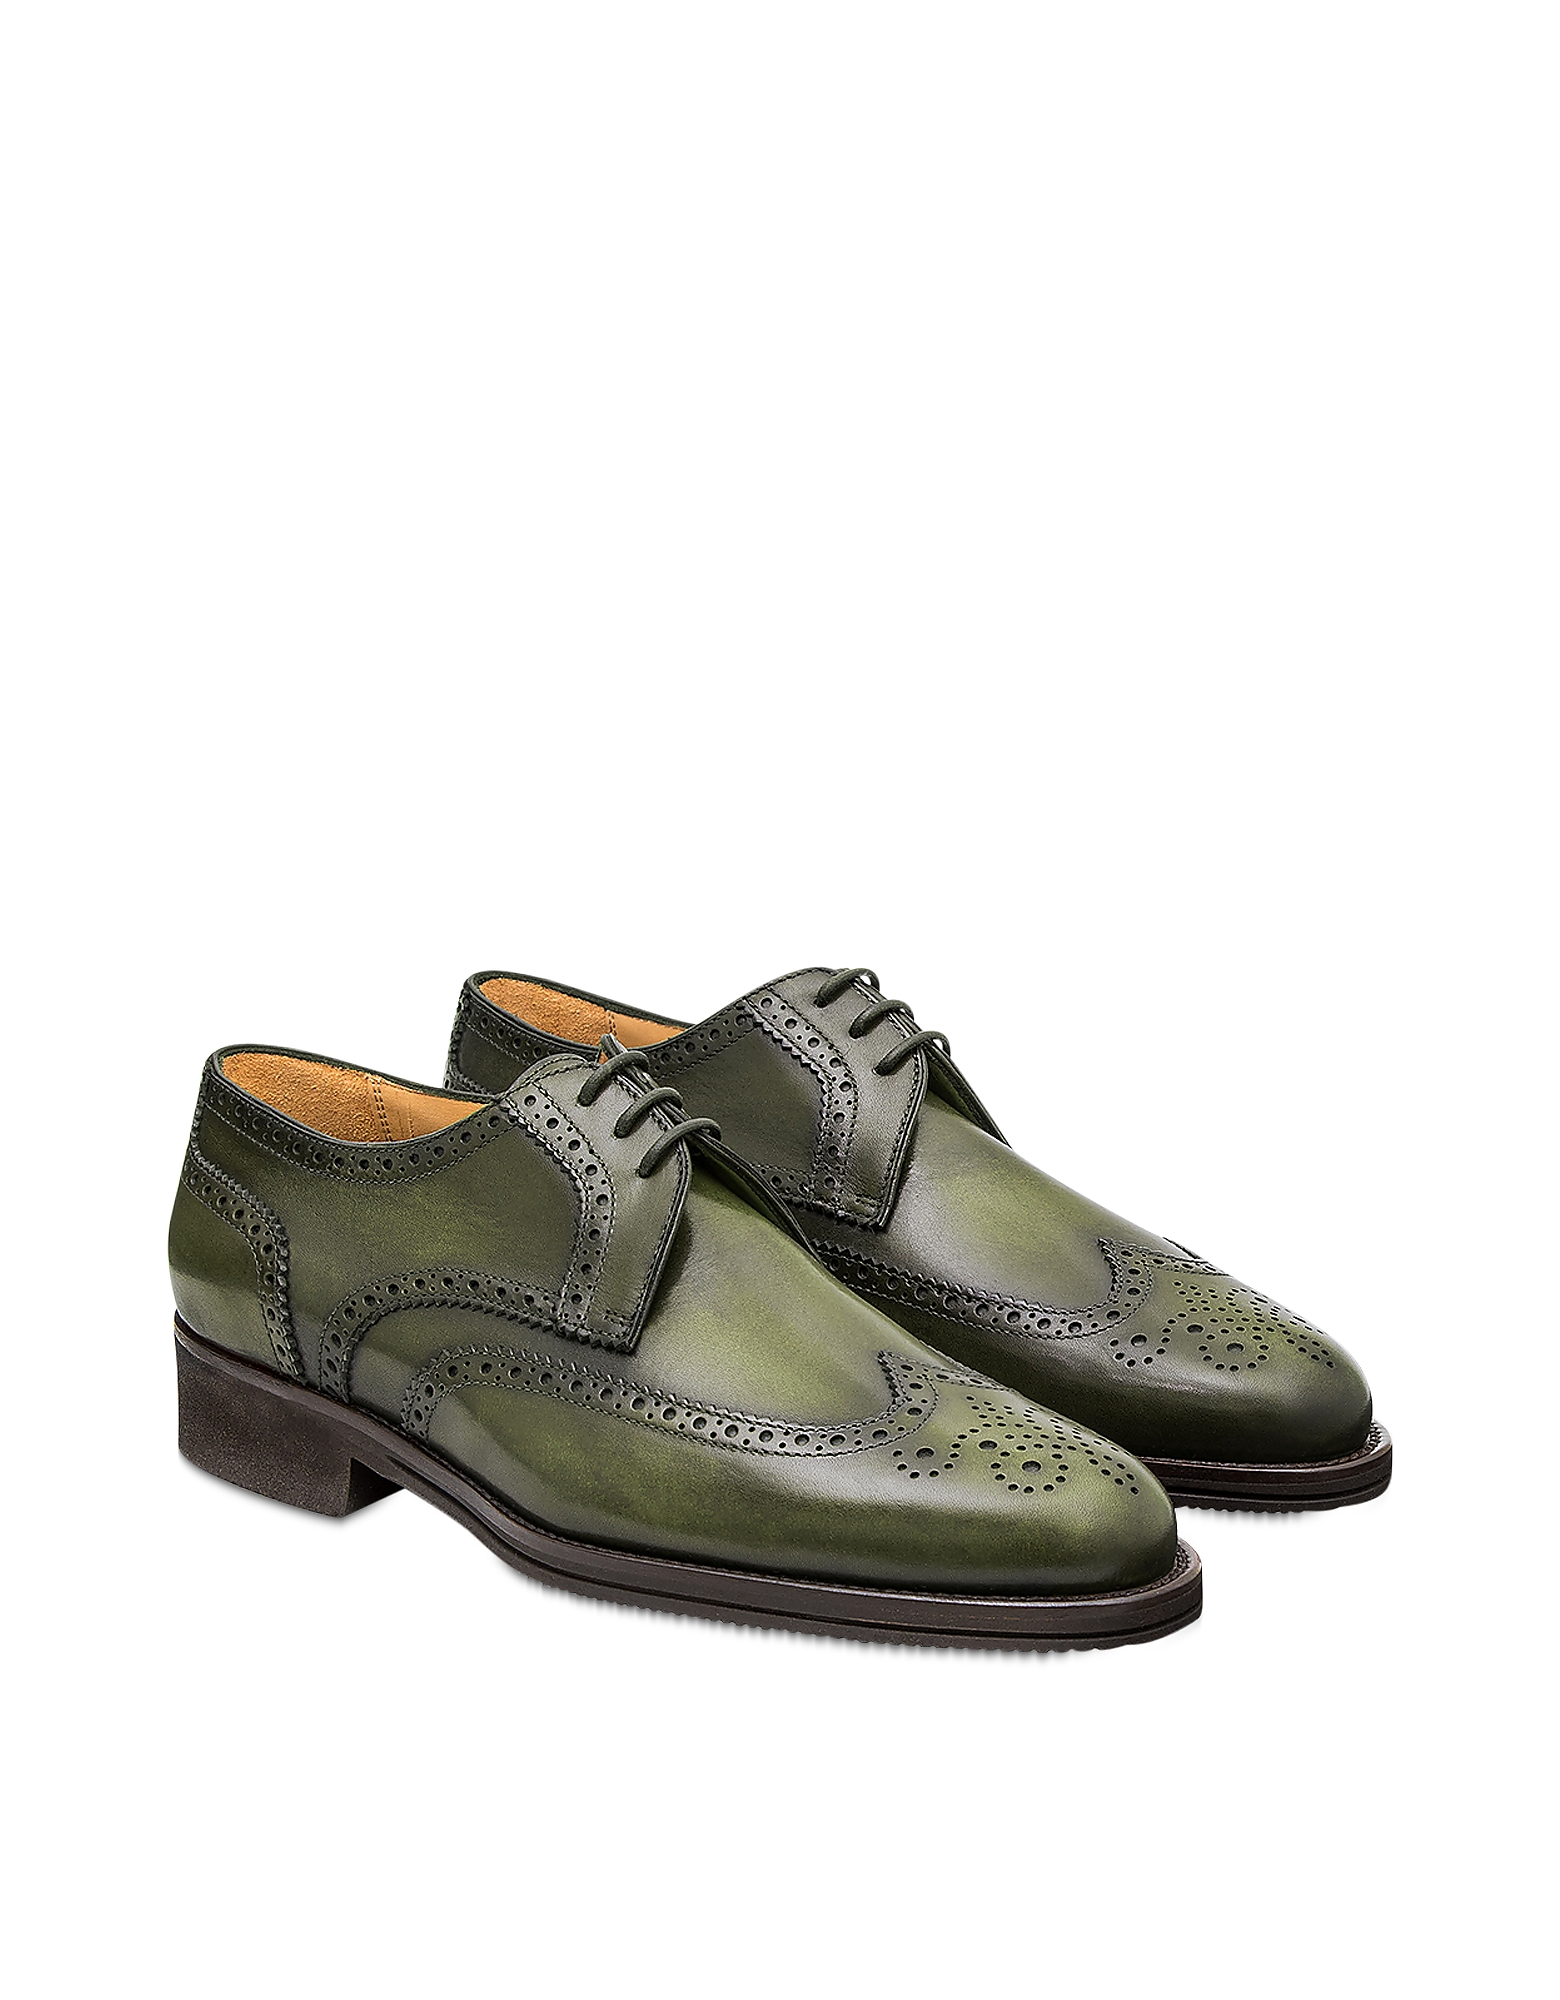 Pakerson Designer Shoes, Turtle Pisa Derby Shoe